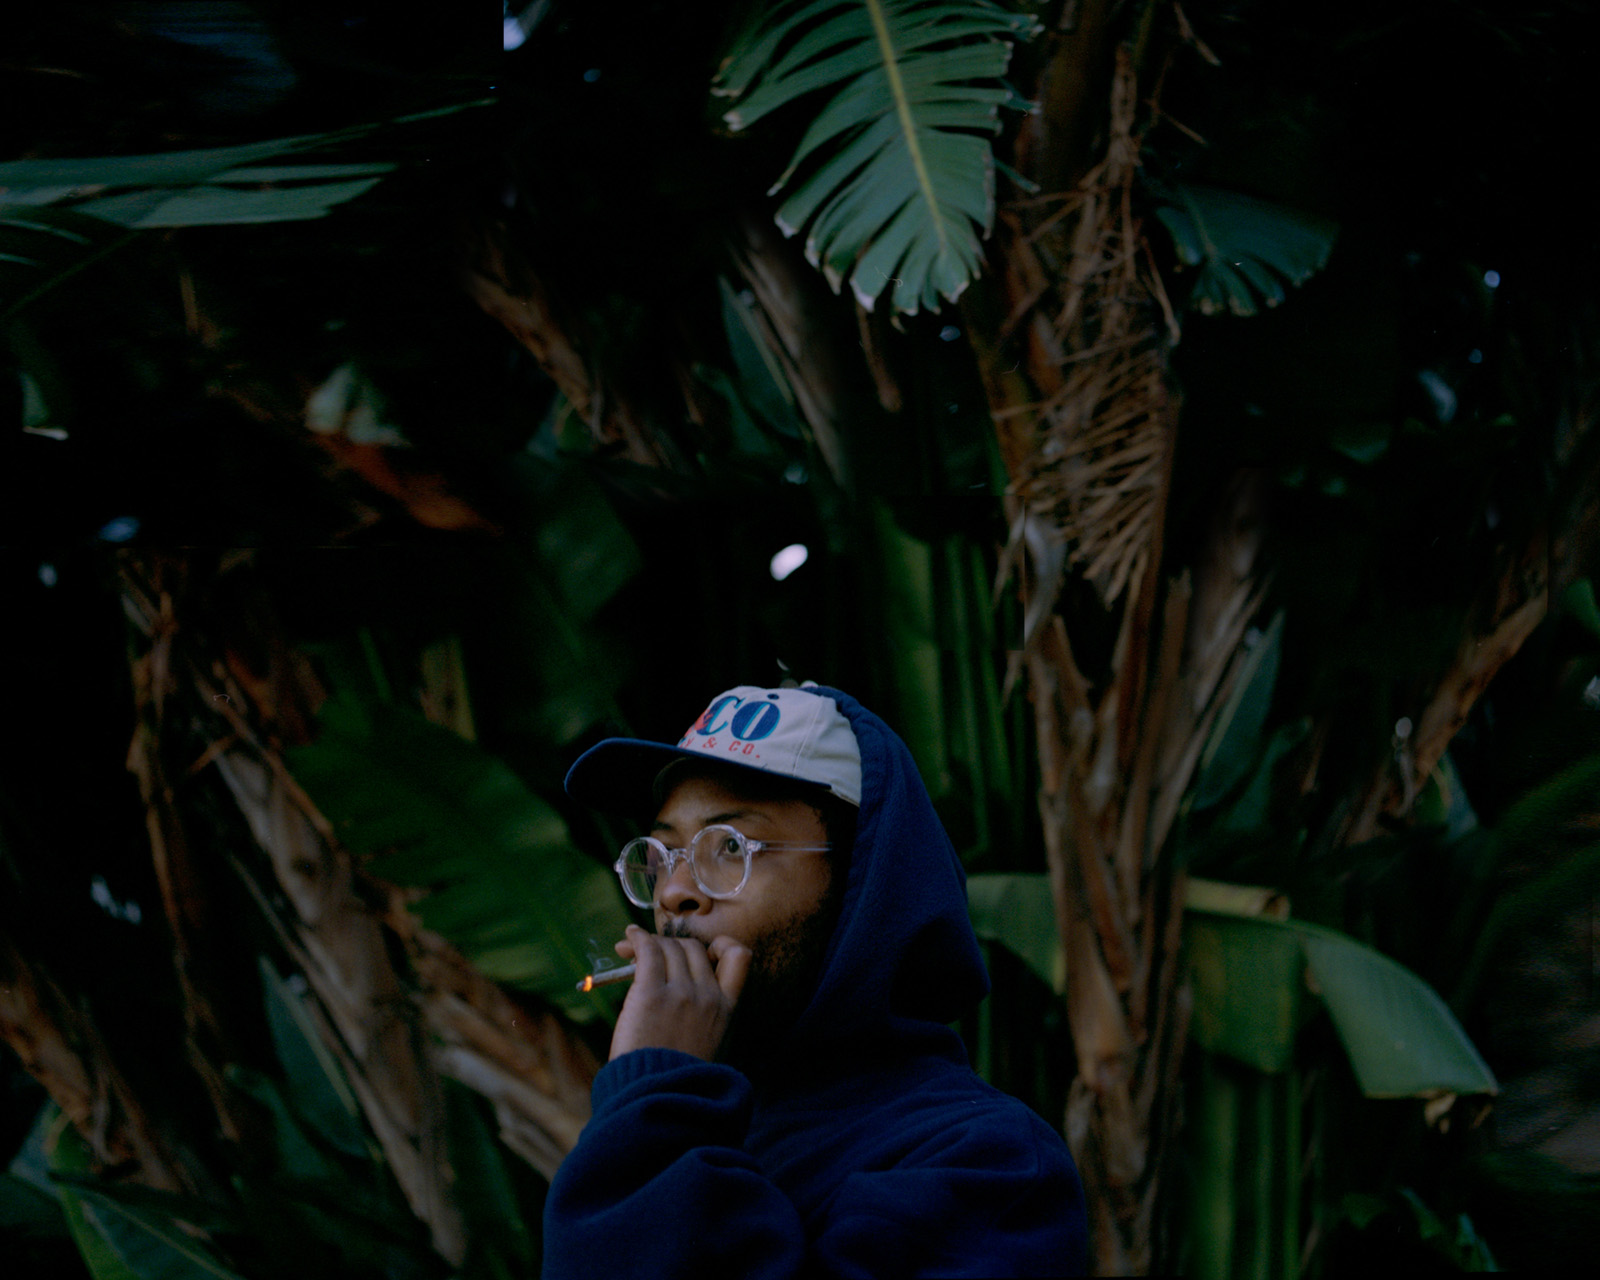 Neues von Knxwledge | Don't Be Afraid & Learn / Howtokope Musikvideos | Albumankündigung